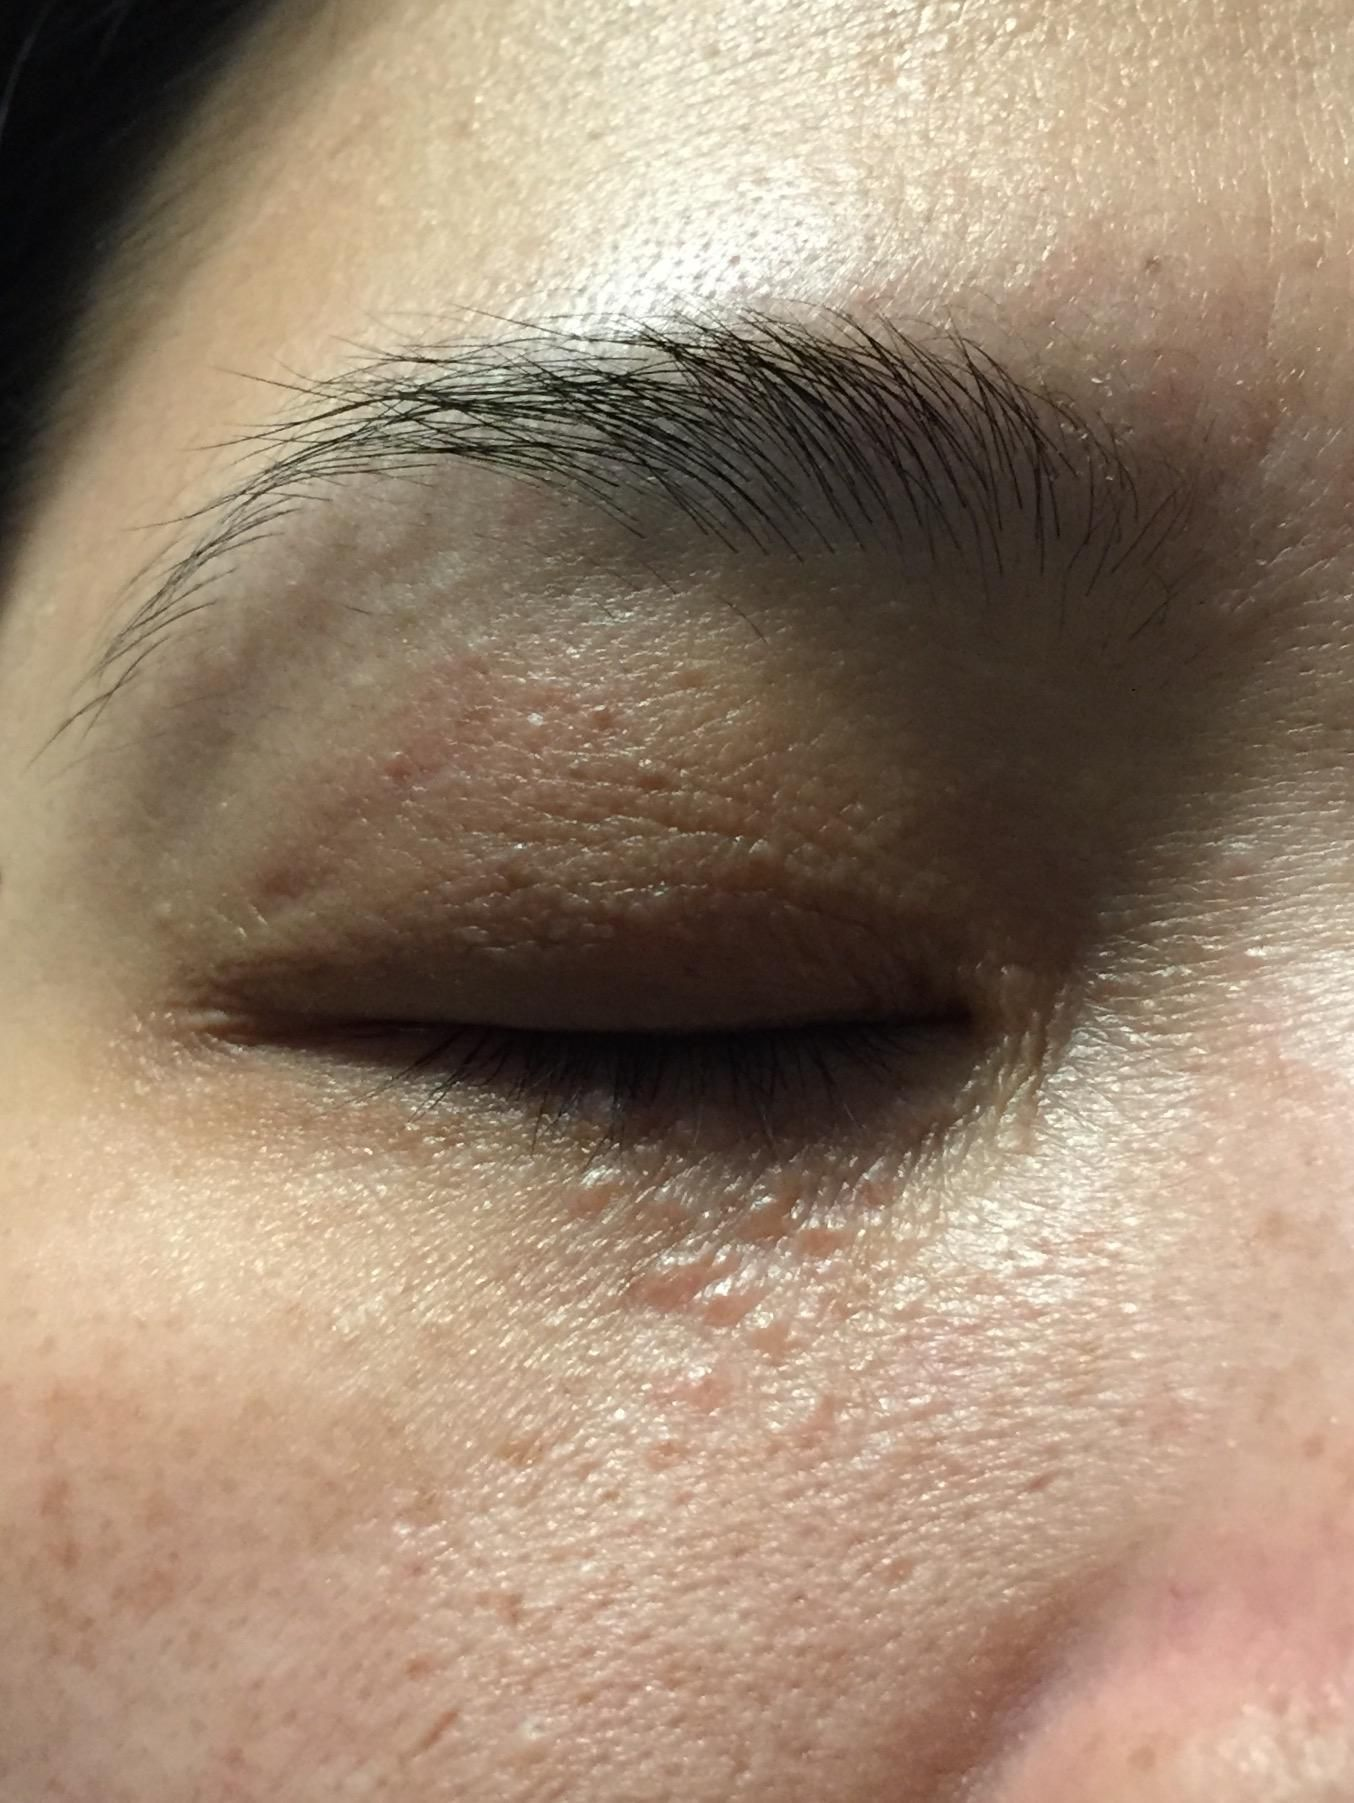 skin concerns] My aunt has these little bumps under her eyes